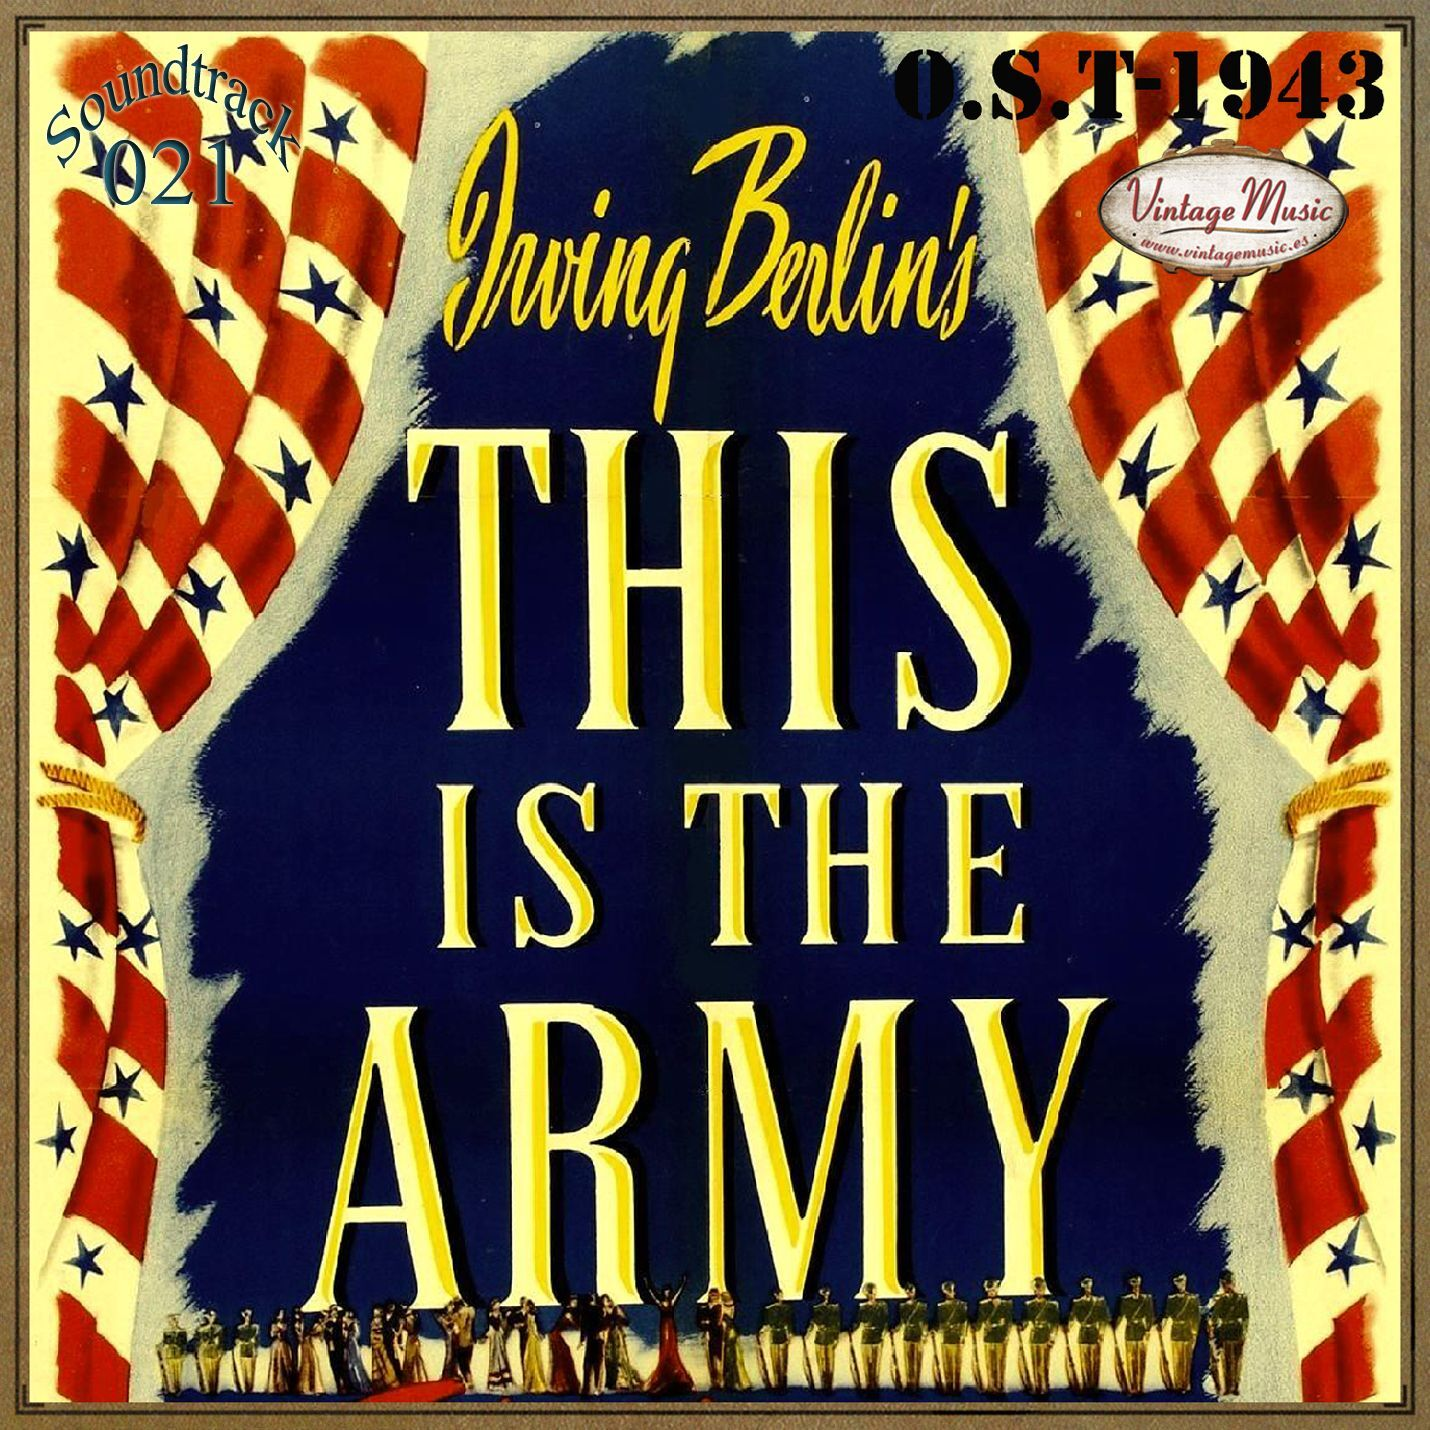 Various Artistas - THIS IS THE ARMY Soundtrack CD 21/100 - O.S.T 1943 Gertrude Niesen George Murphy - CD